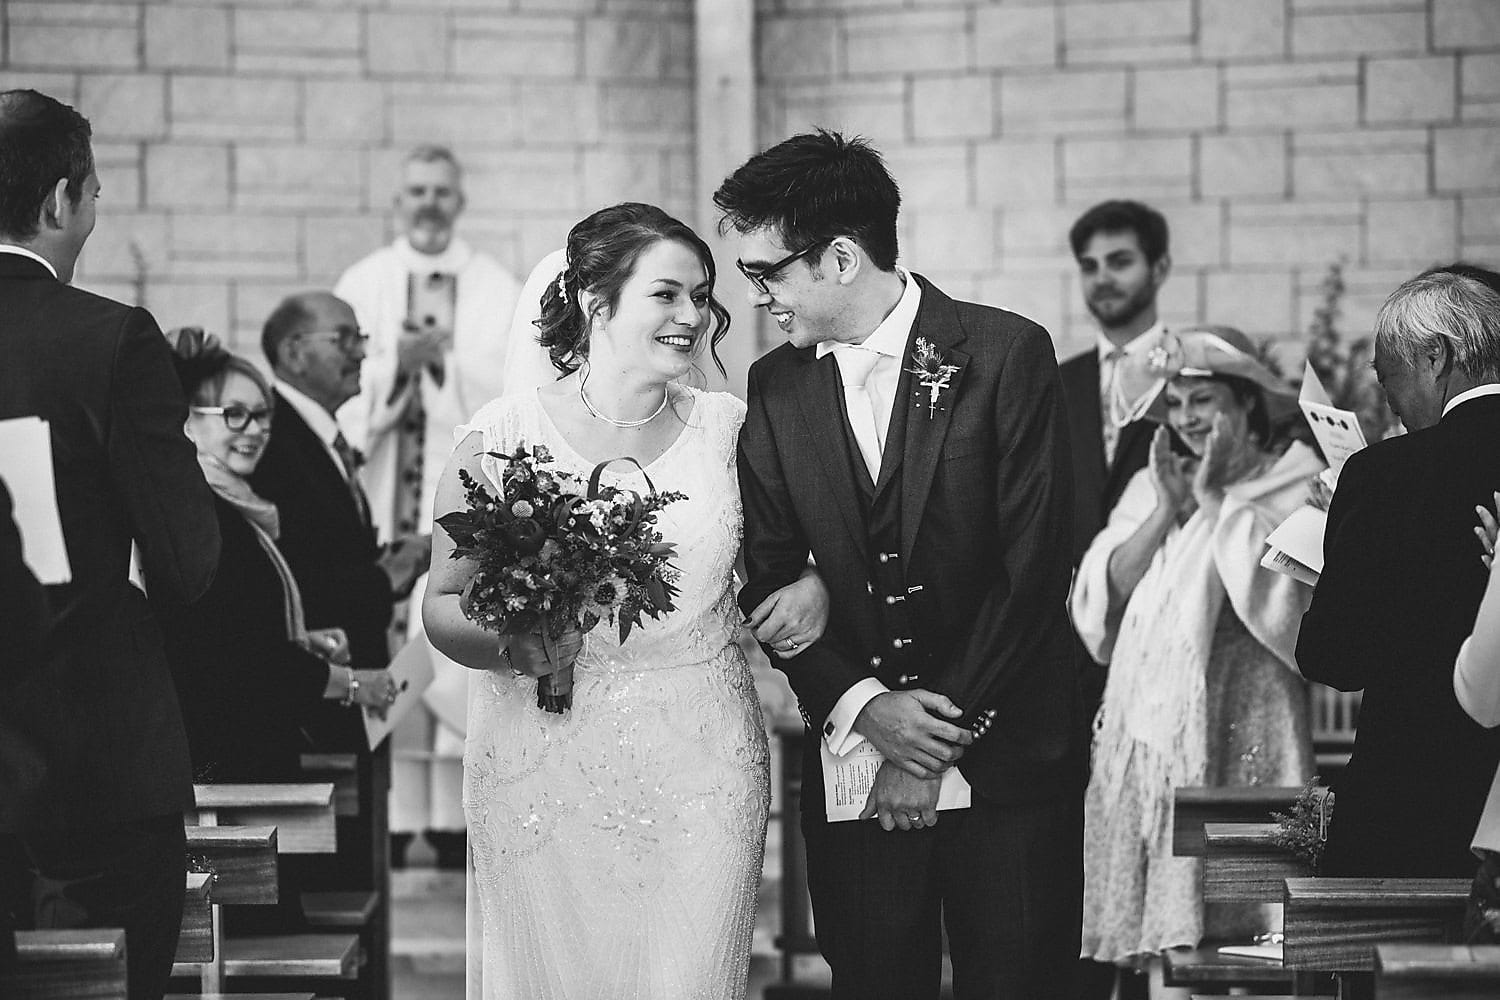 A black and white shot of the couple walking down the aisle together, smiling and gazing at each other